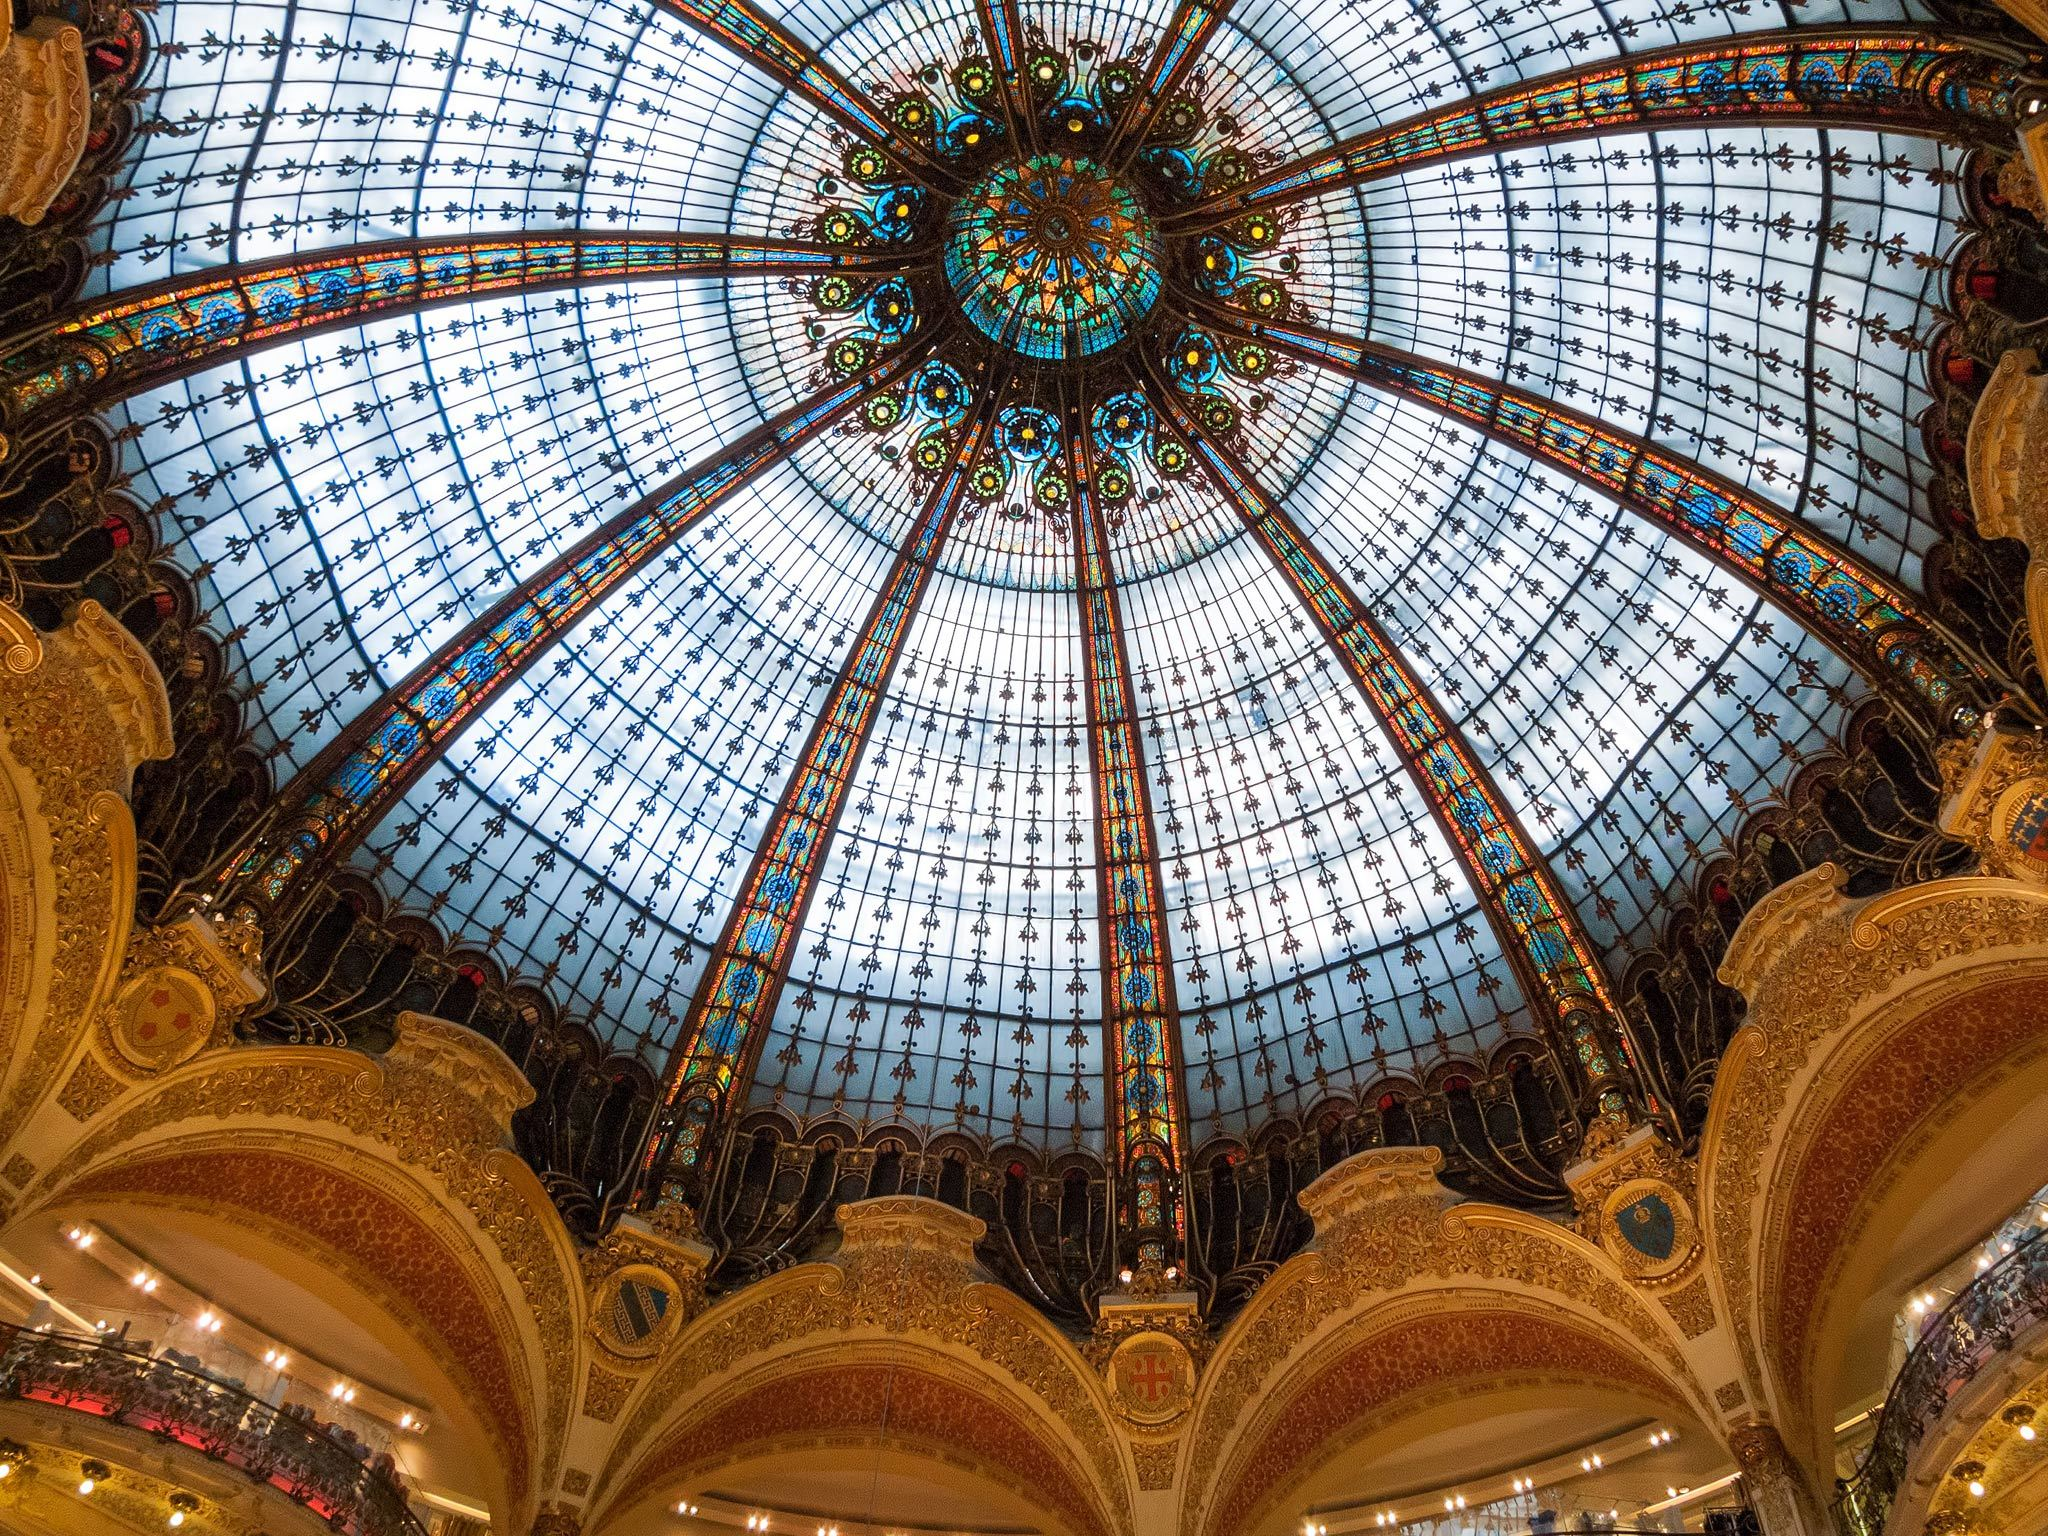 The ceiling of the Galeries Lafayette department store in Paris